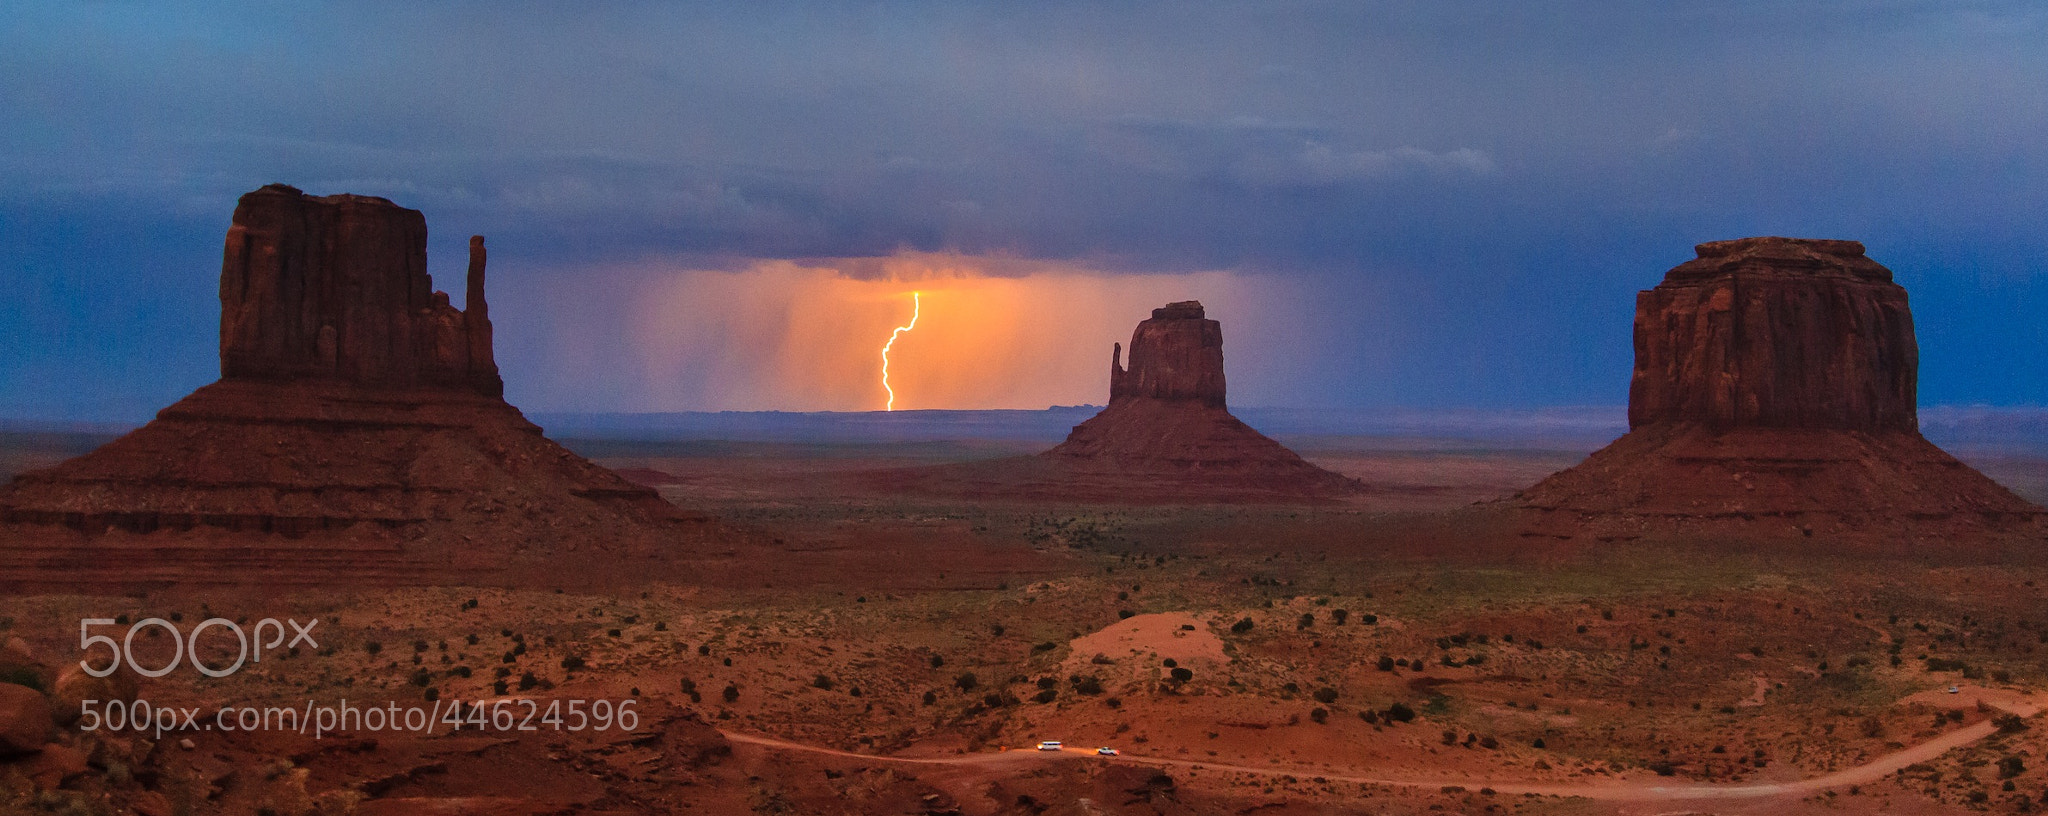 Photograph Lightning over the Mittens, Monument Valley by Alessandro Restelli on 500px